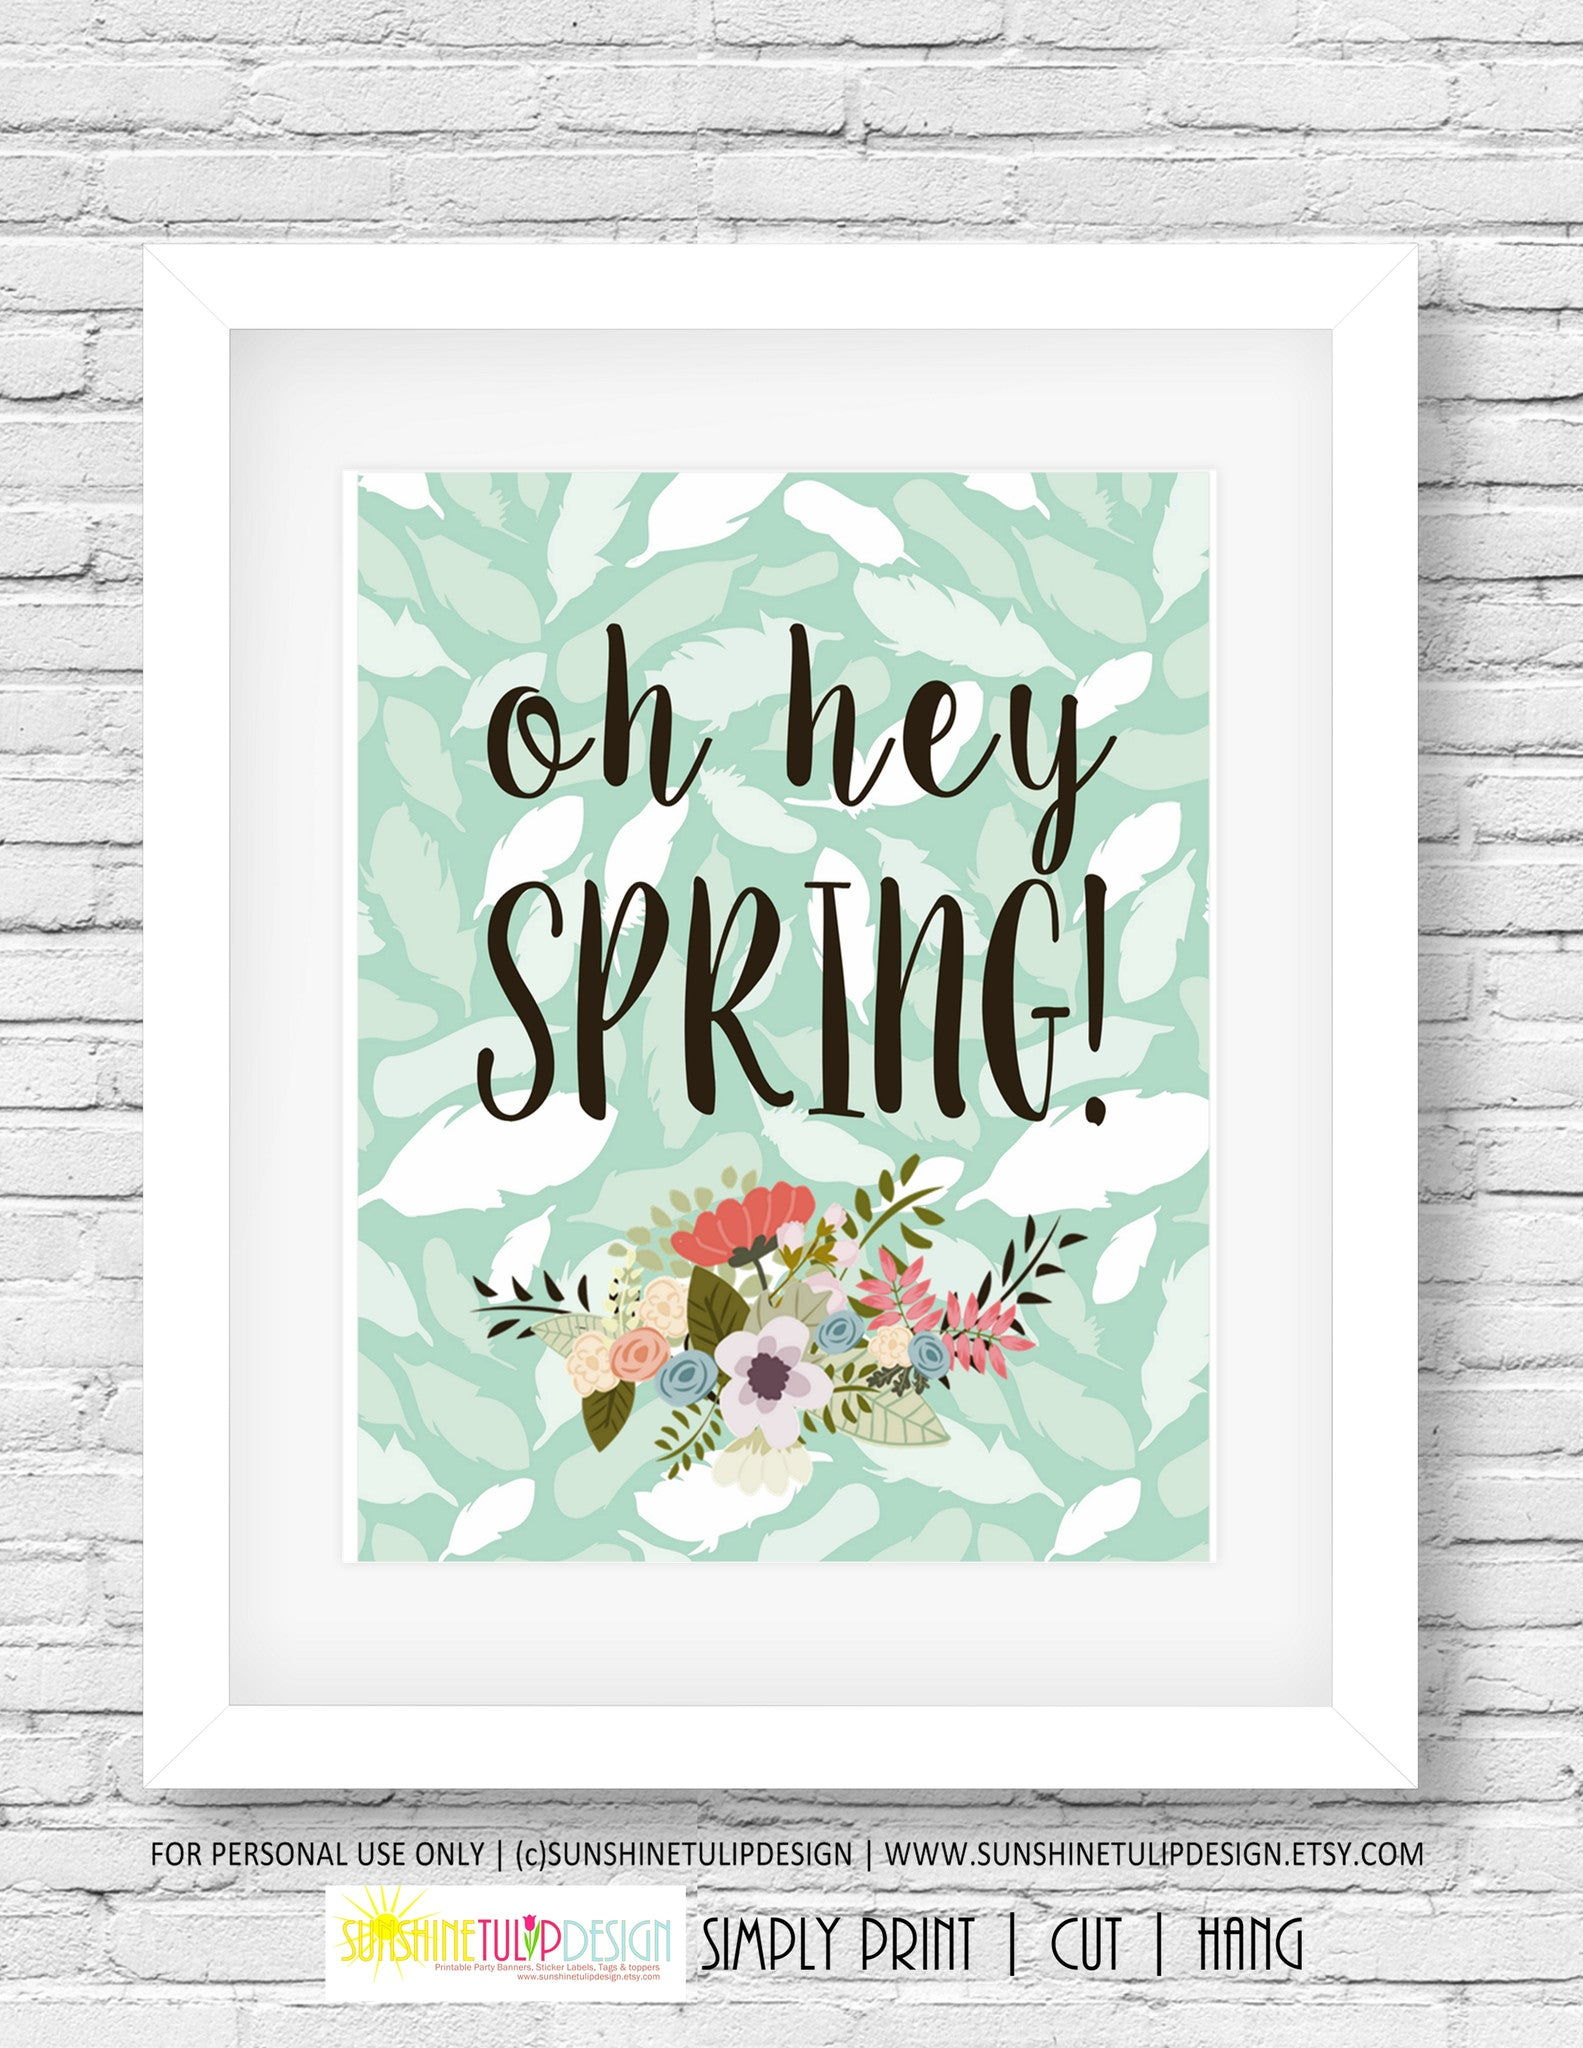 image relating to Planner Cover Printable identify Printable Oh Hey Spring Artwork, Wall Indicator, Planner Deal with via SUNSHINETULIPDESIGN